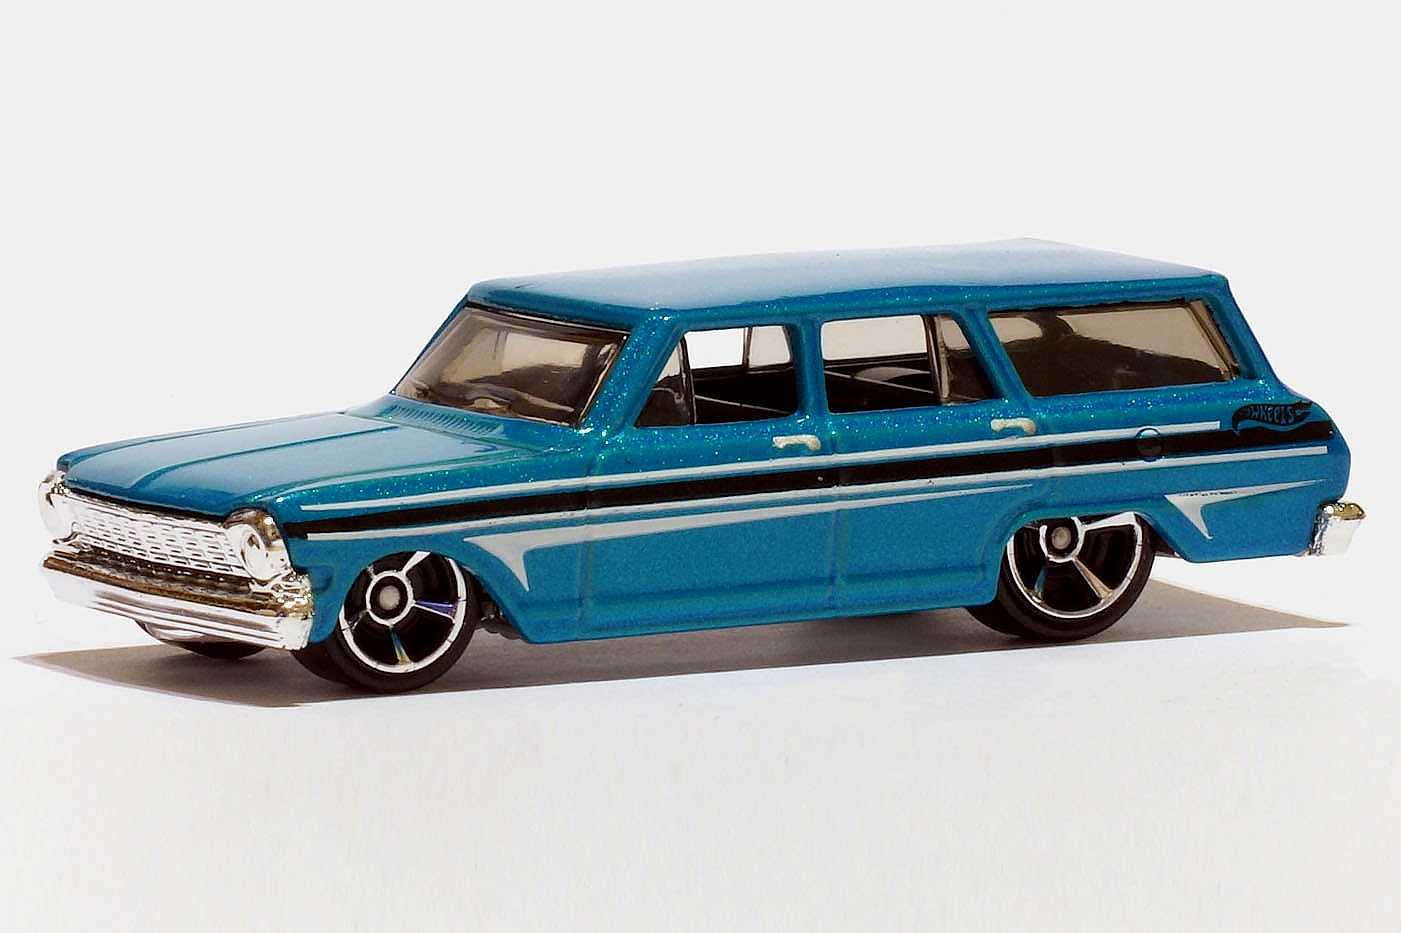 64 Chevy Nova Station Wagon Hot Wheels Wiki Fandom Powered By Wikia 1964 Truck Paint Colors